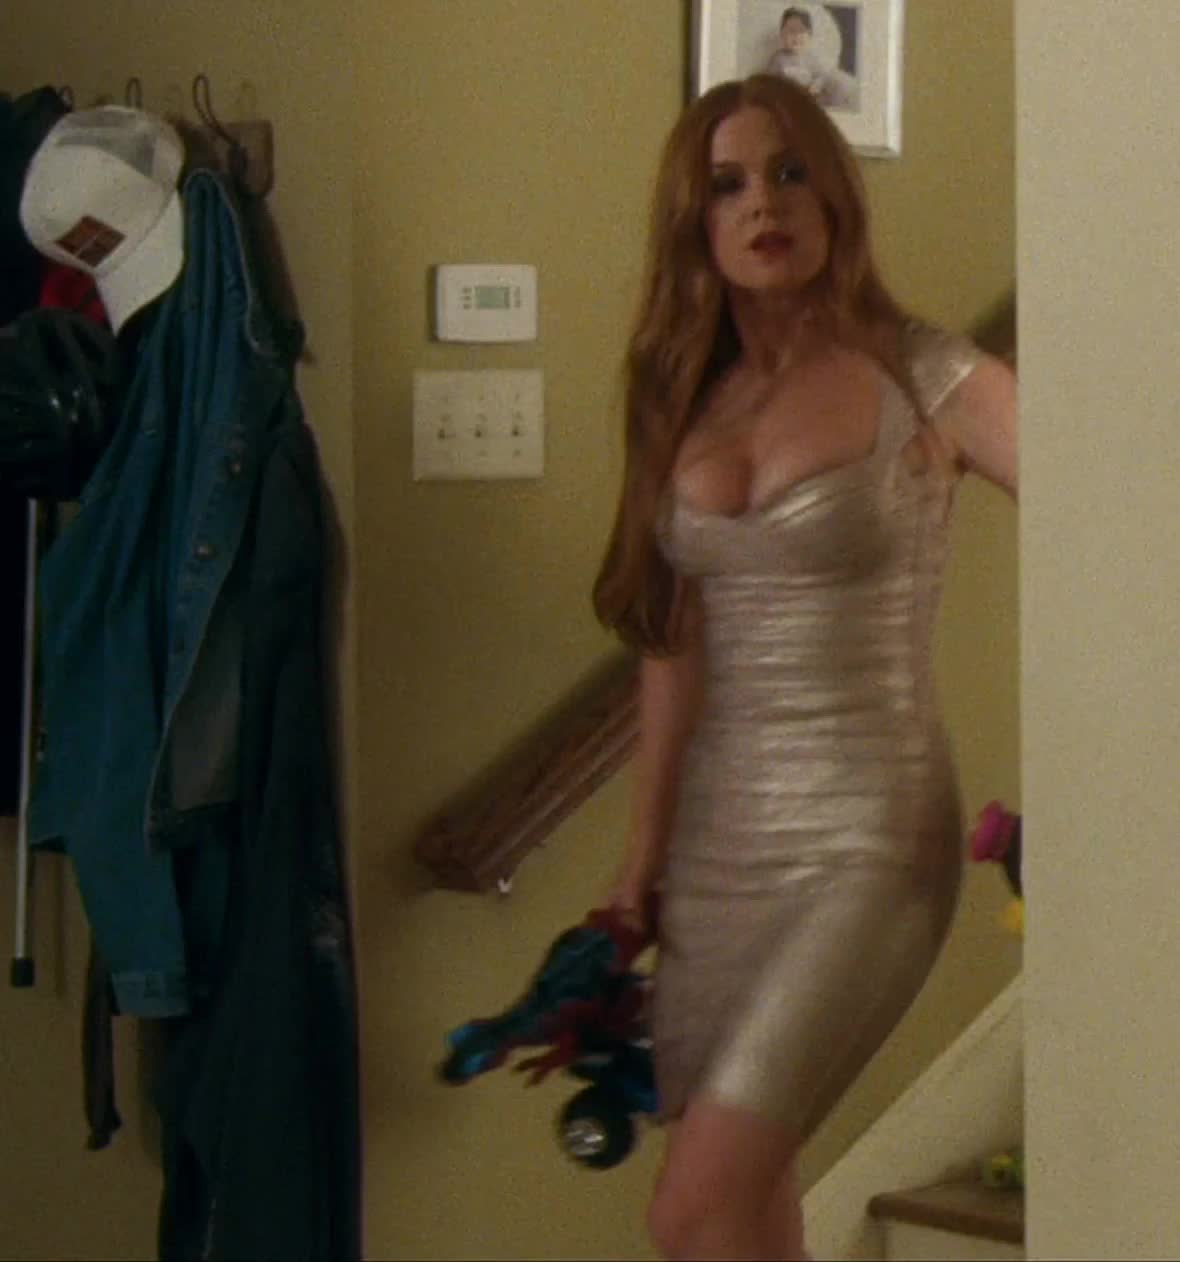 Celebs, popular, Isla Fisher - Keeping Up with the Joneses GIFs